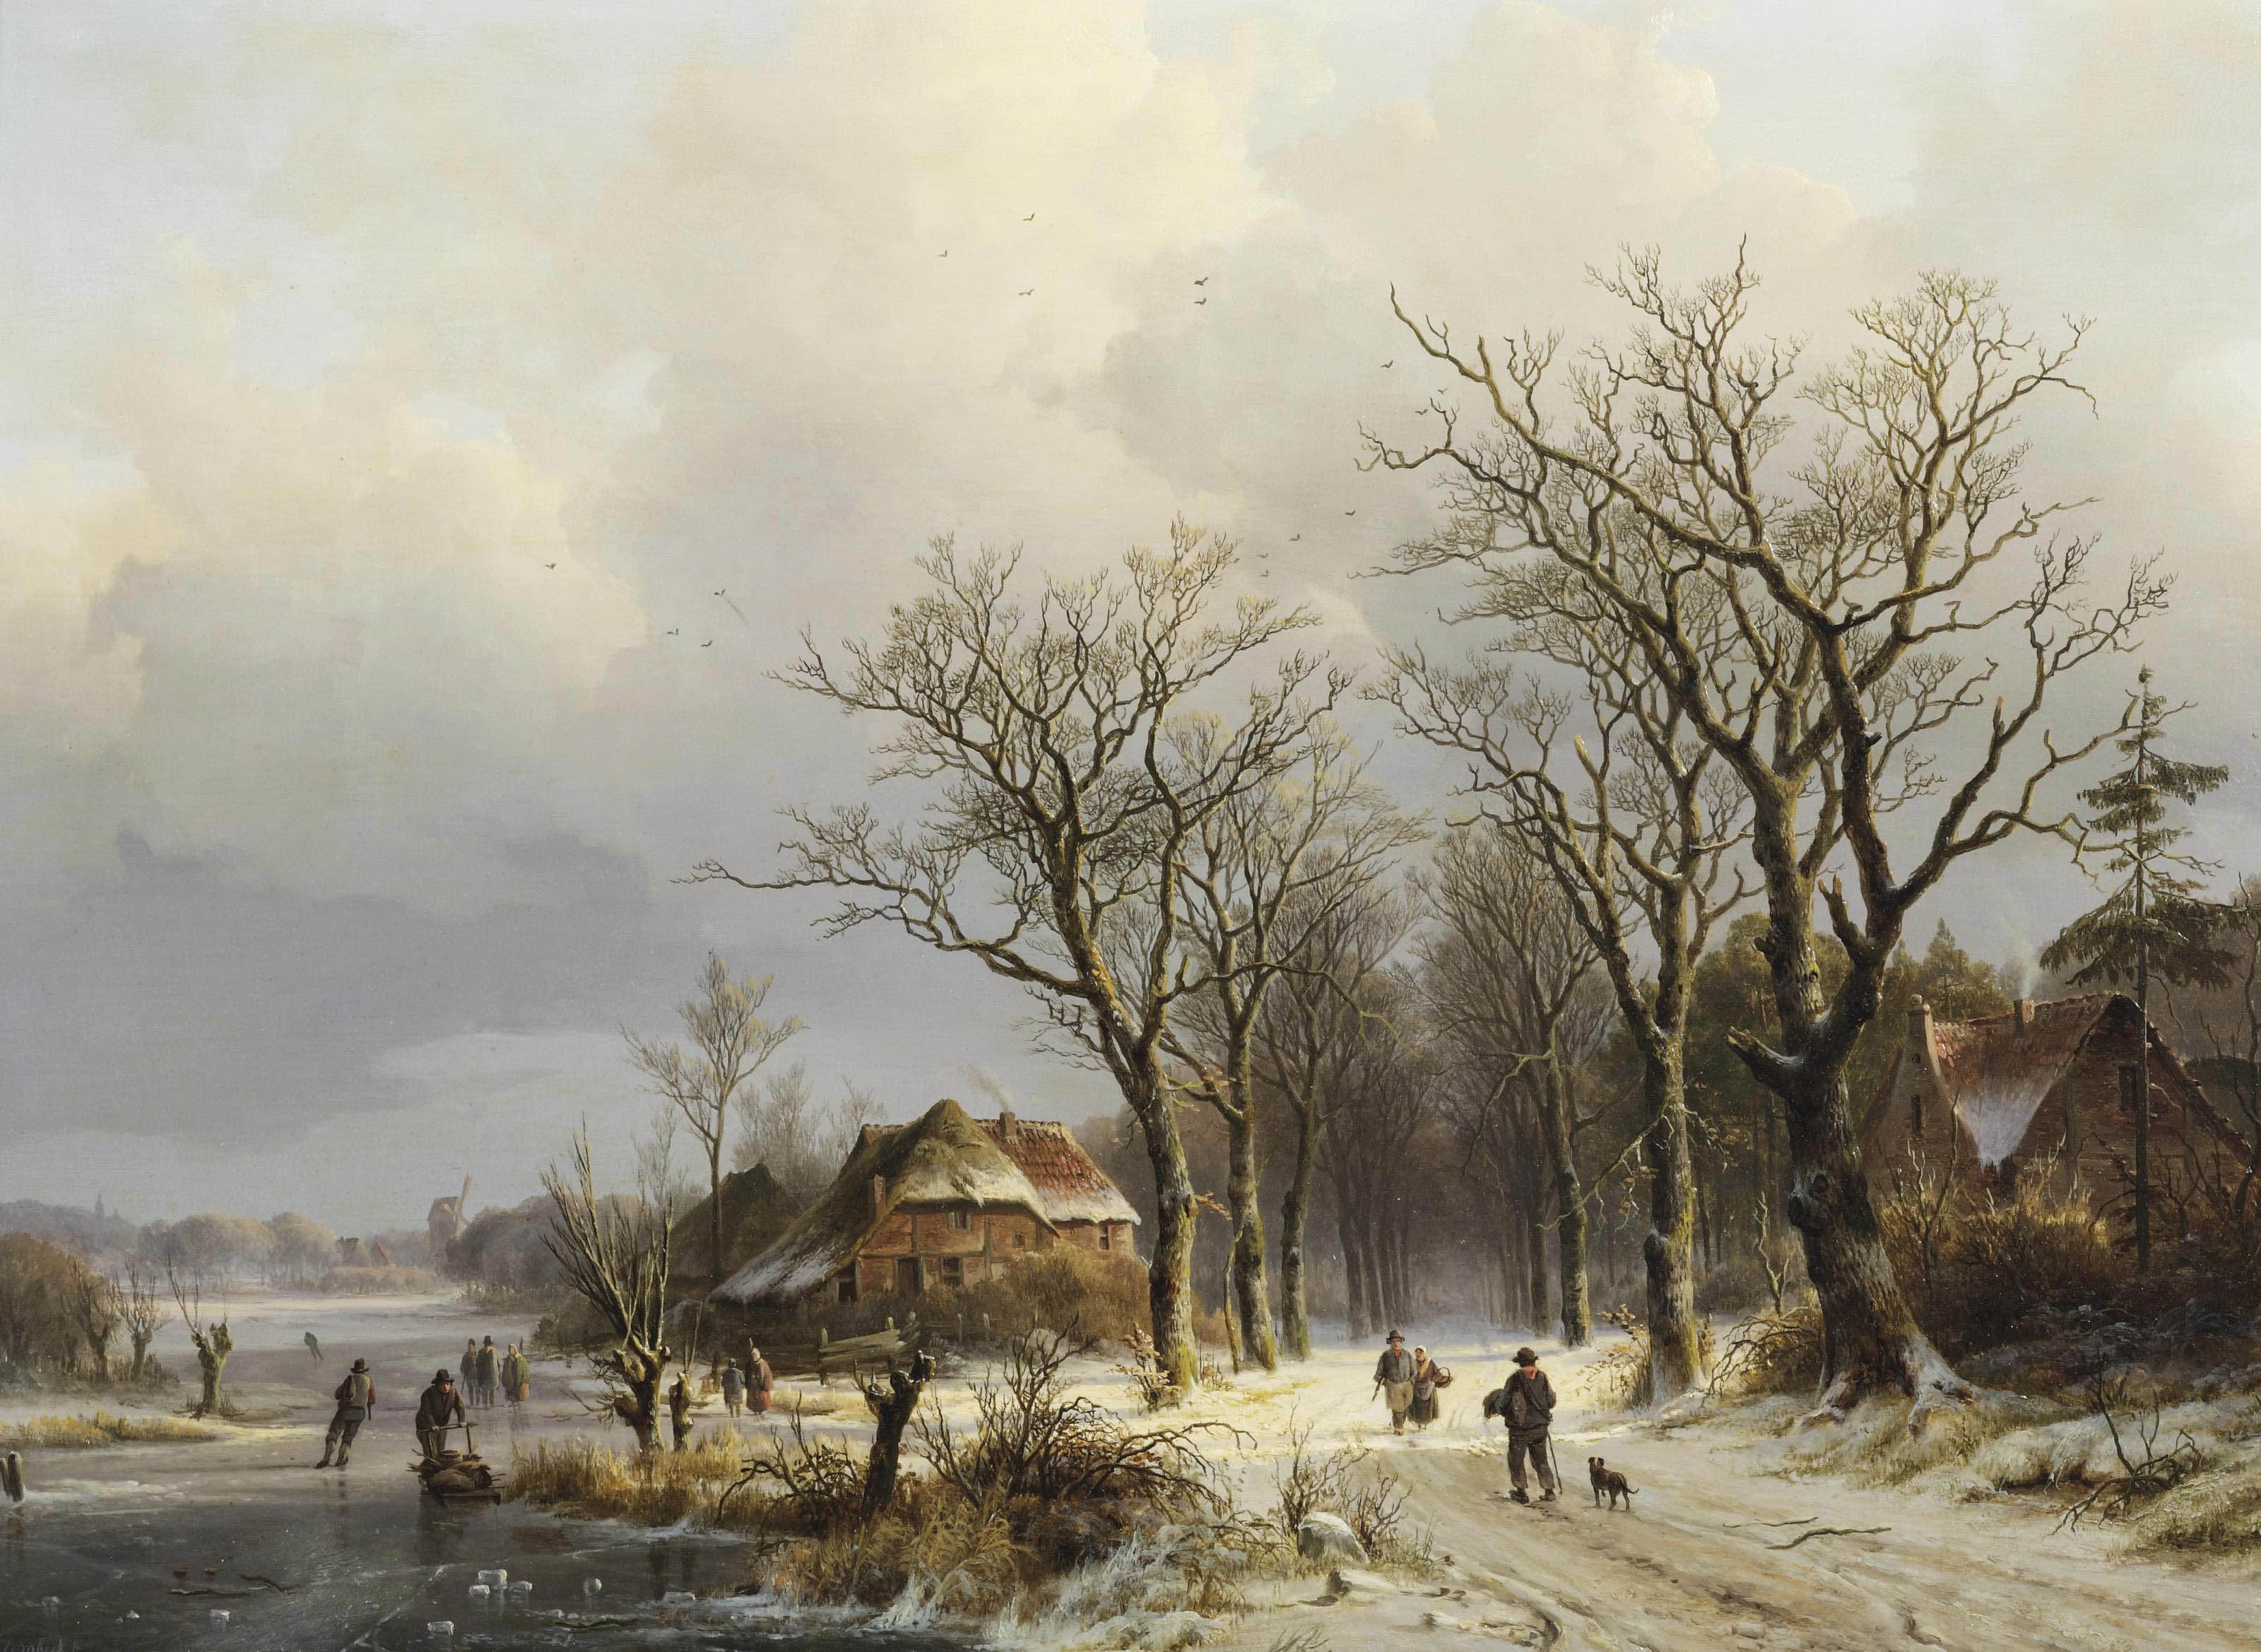 A wooded winter landscape with travellers on a snow covered path and skaters on the ice